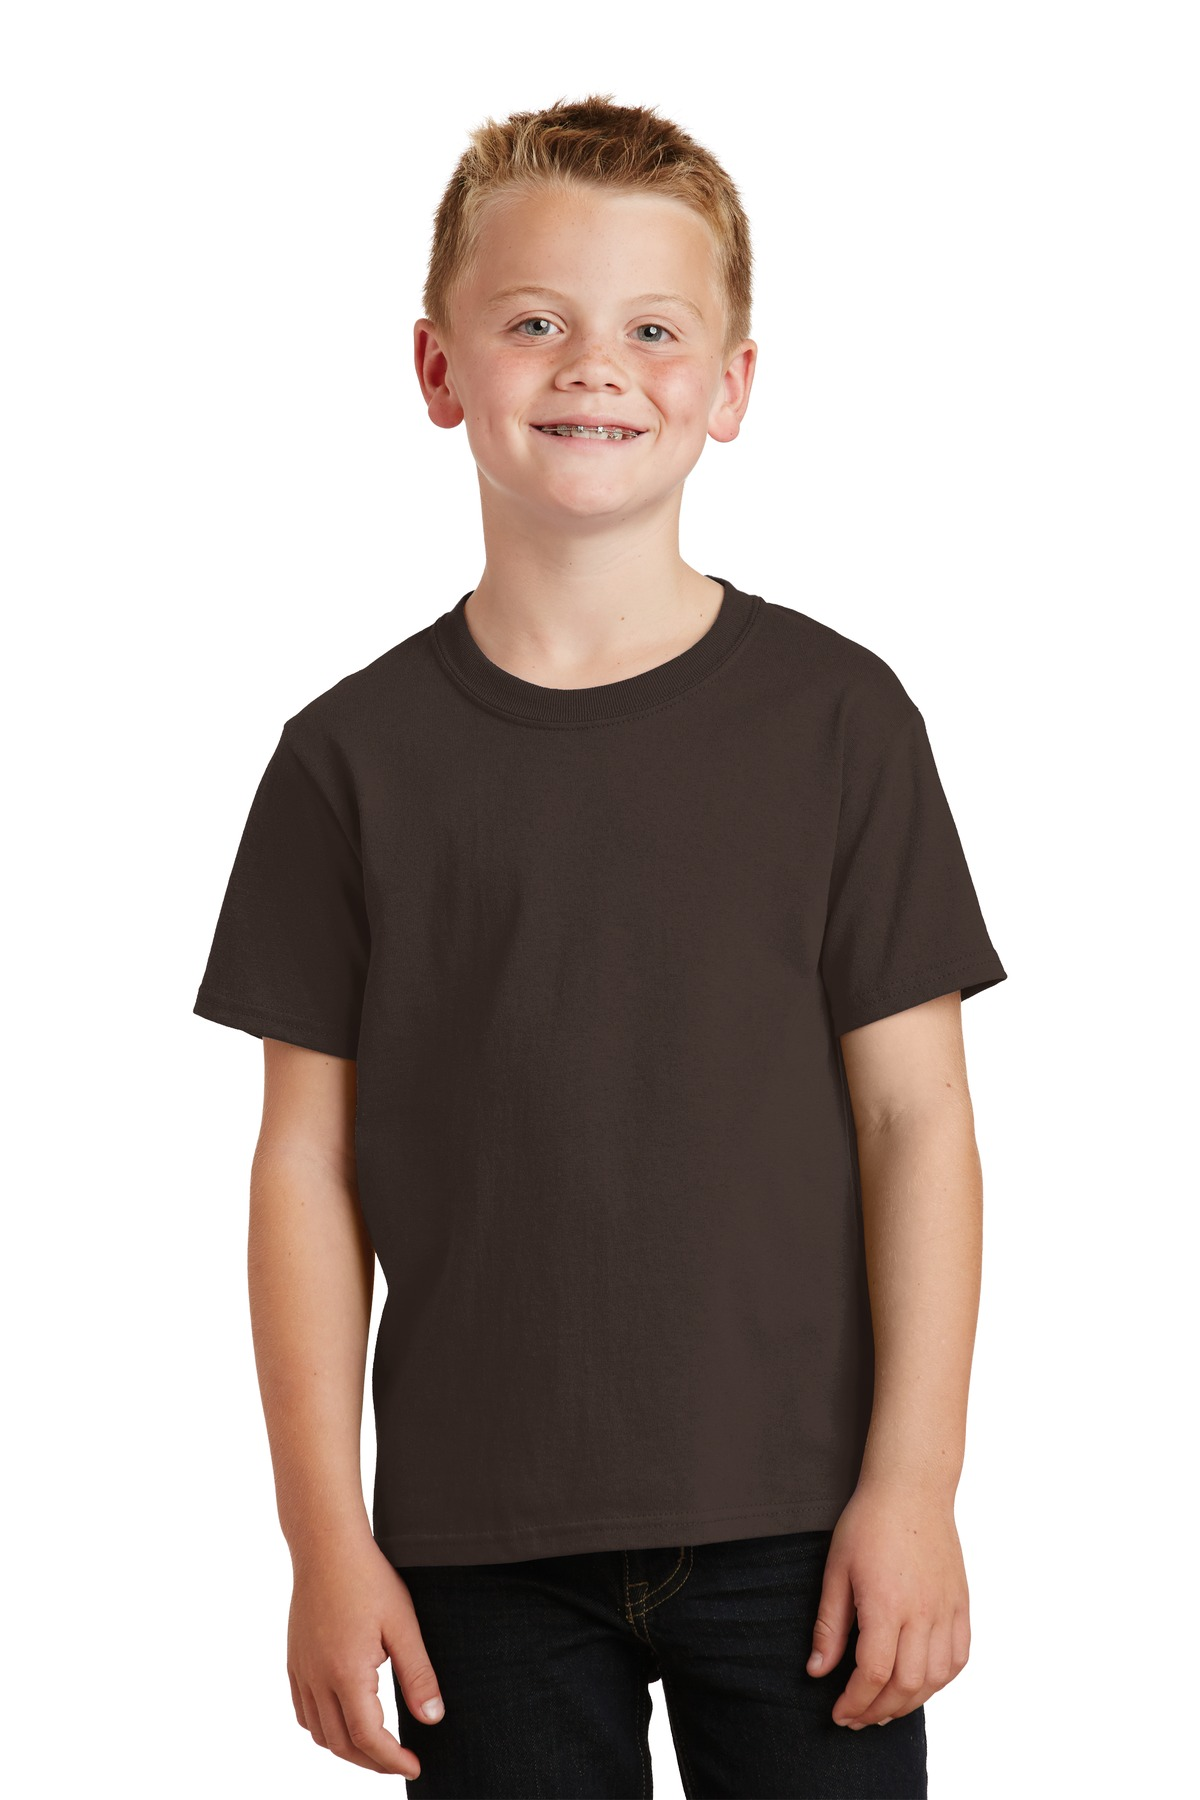 Port & Company ®  - Youth Core Cotton Tee. PC54Y - Dark Chocolate Brown